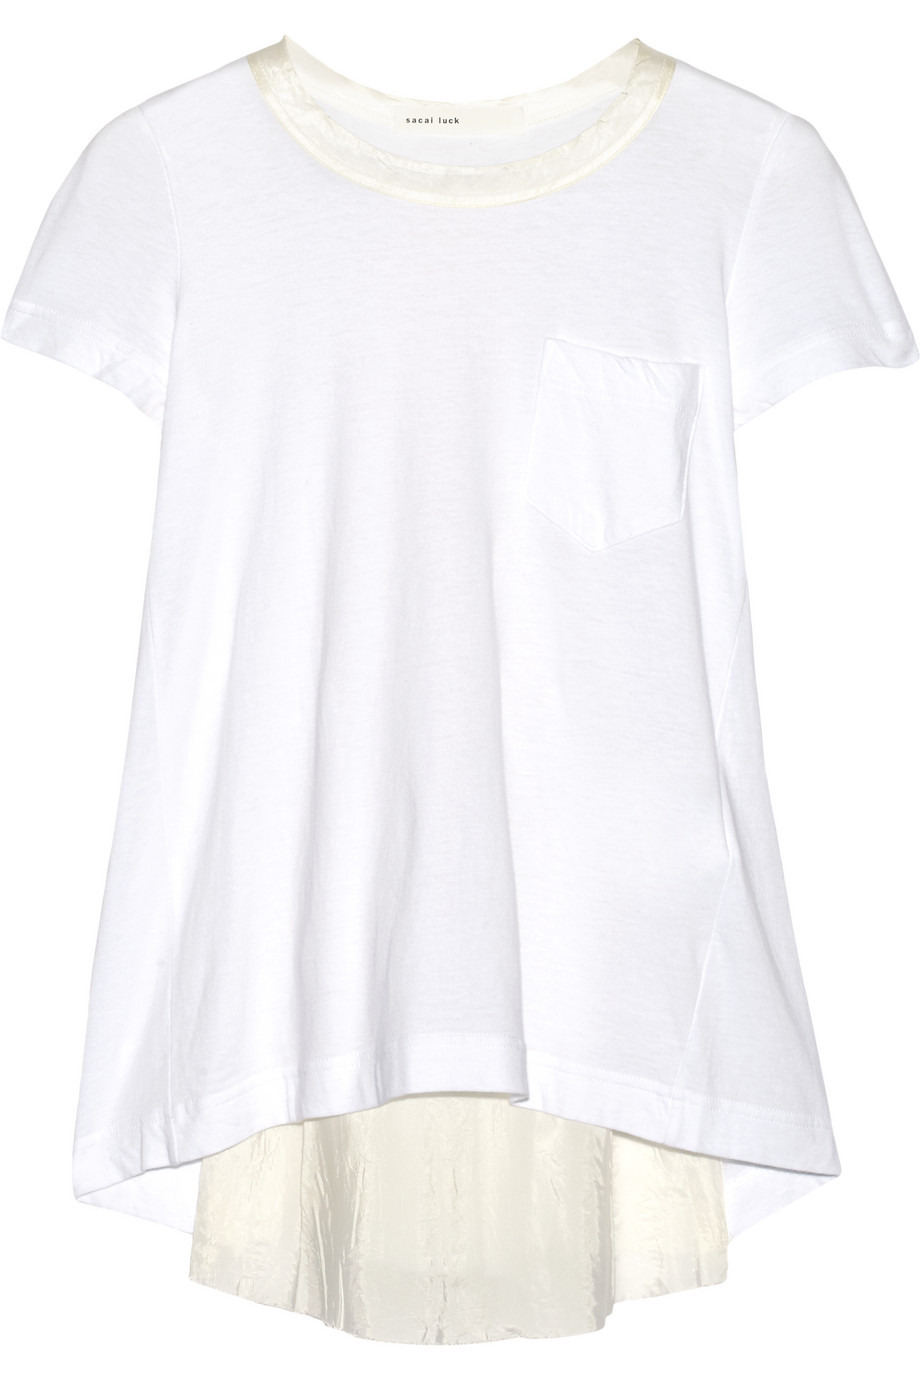 Sacai Luck Tulle and Satin-Paneled Cotton-Jersey Top, Size: 3